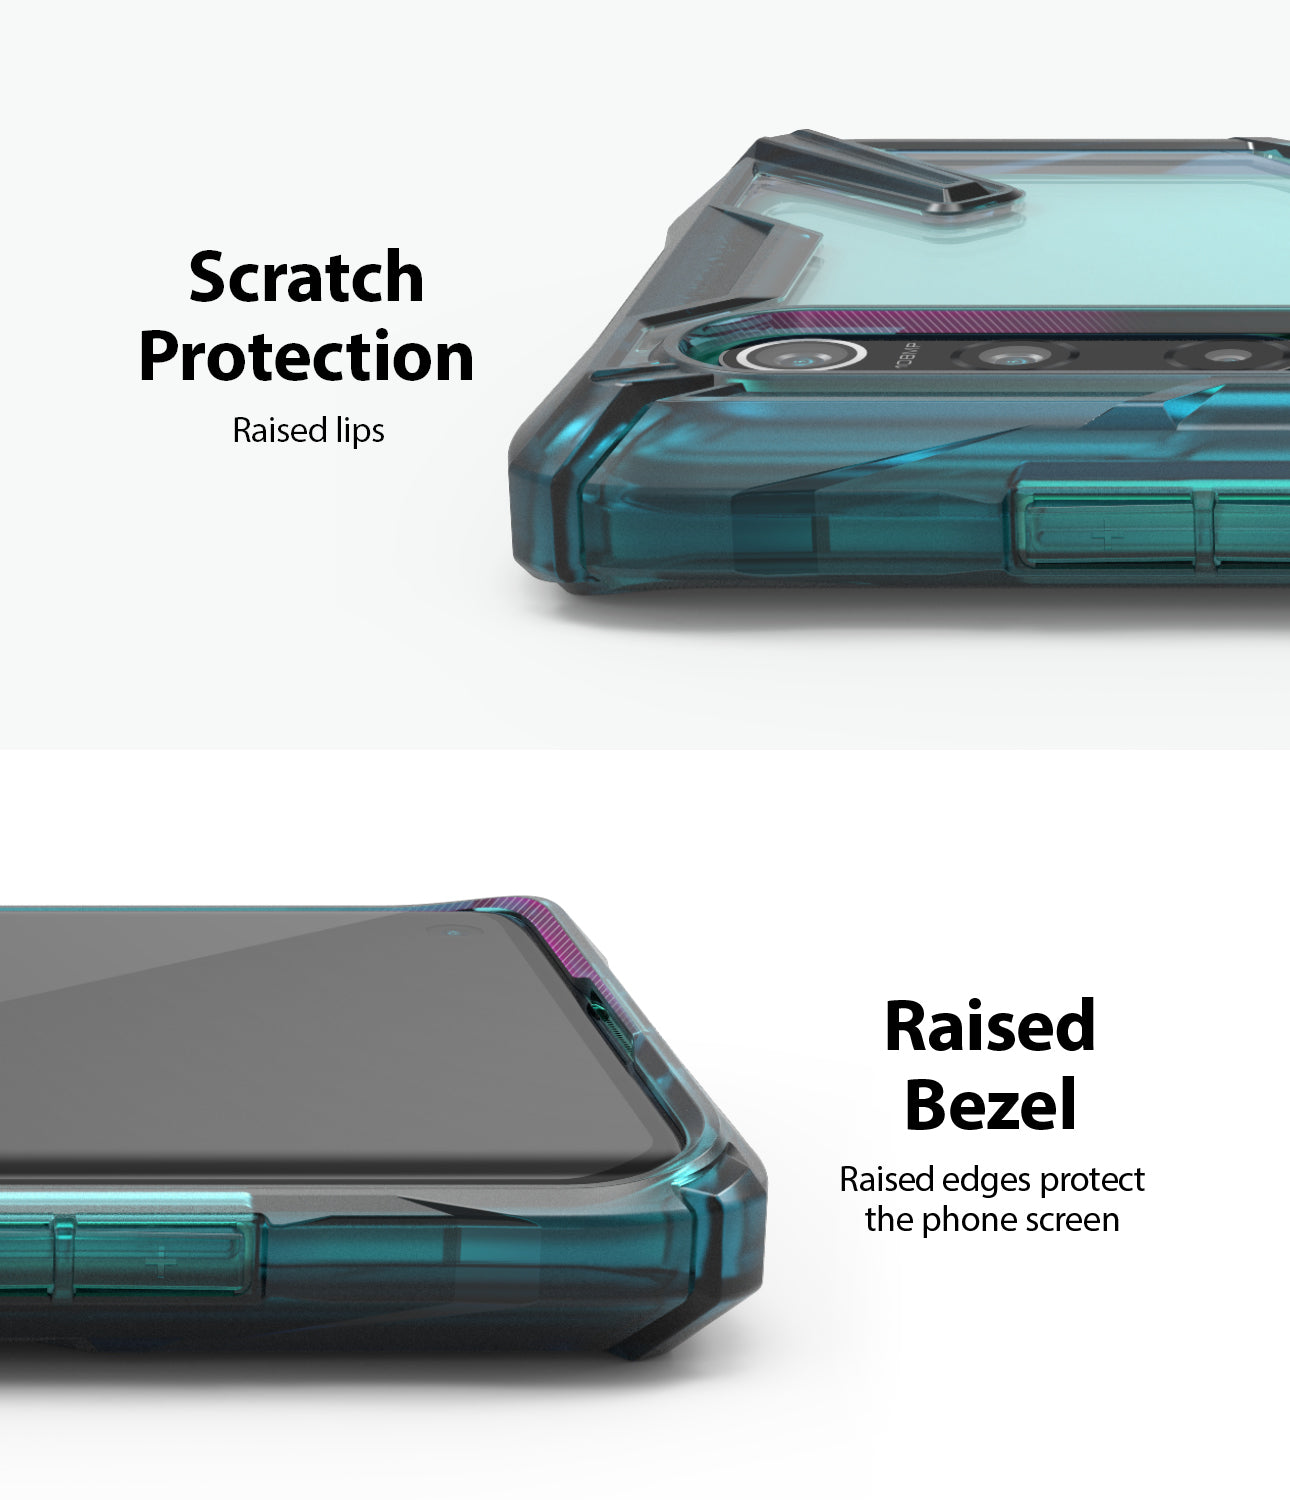 scratch protection with raised lips, raised bezel to protect the screen and camera